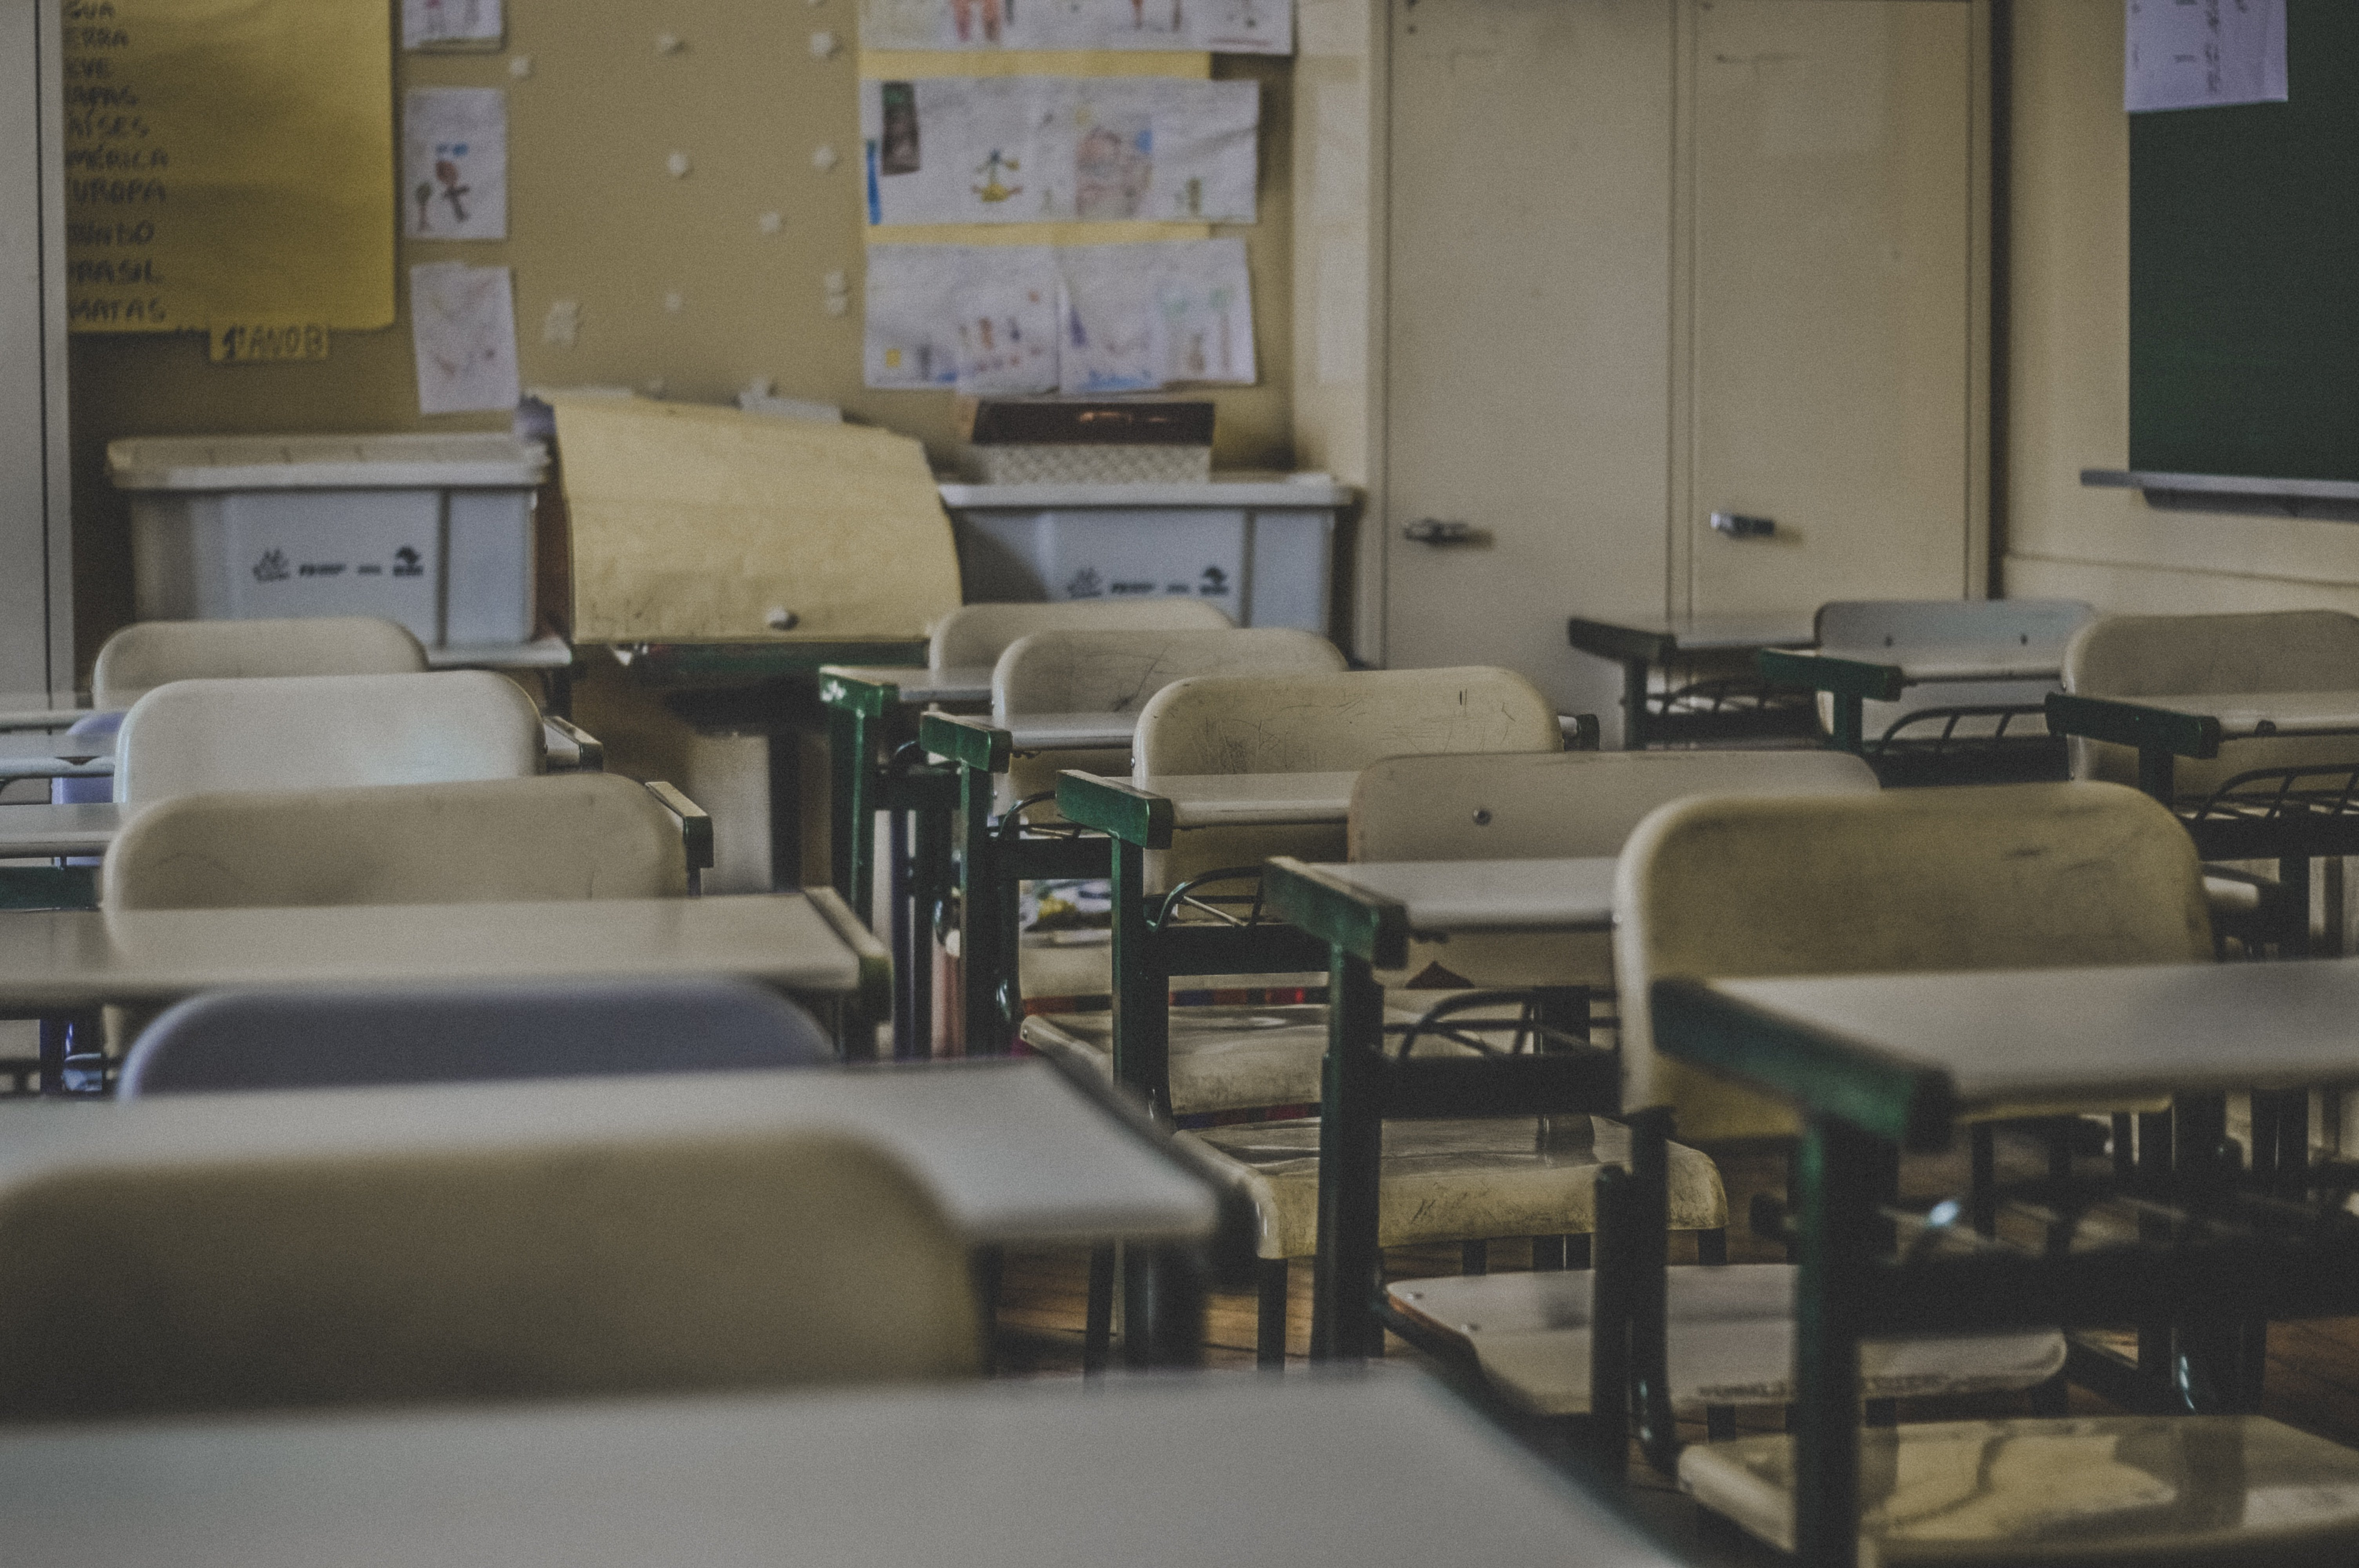 An empty school | Source: Unsplash.com